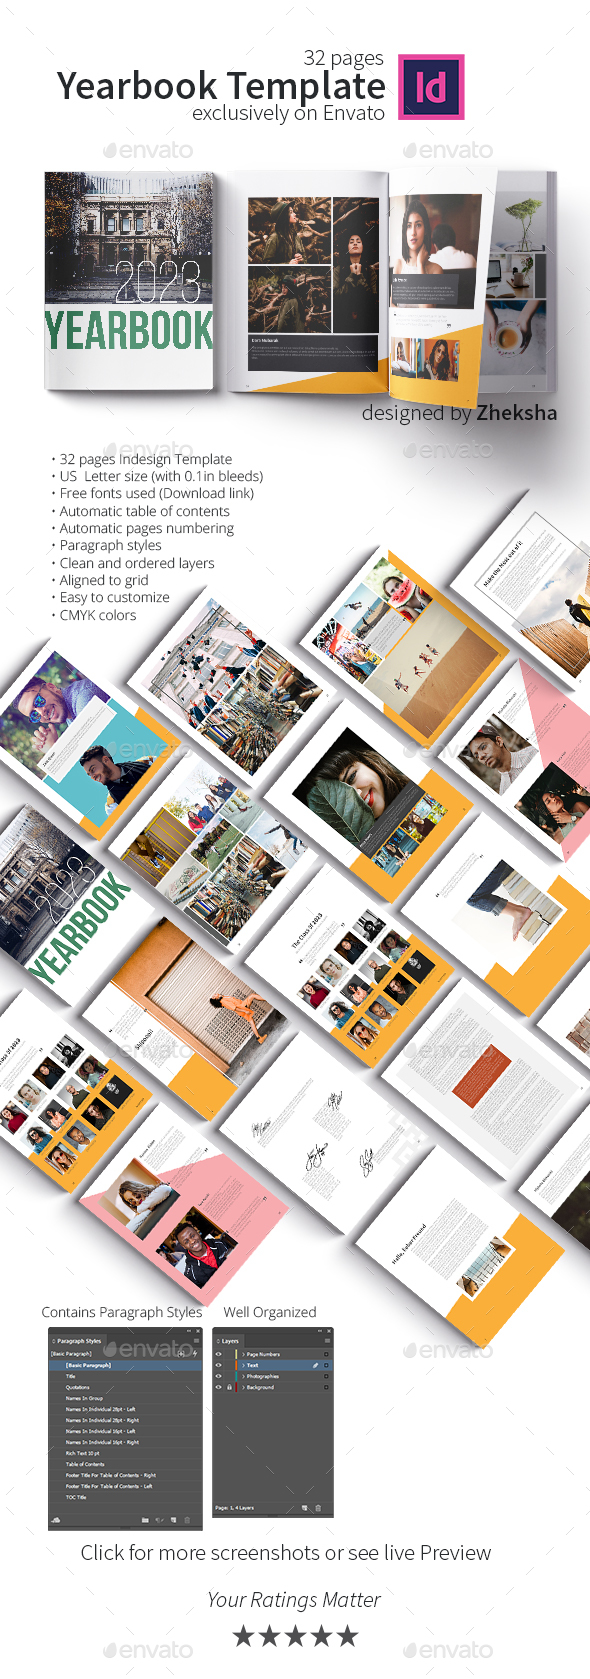 Yearbook Graphics Designs Templates From Graphicriver